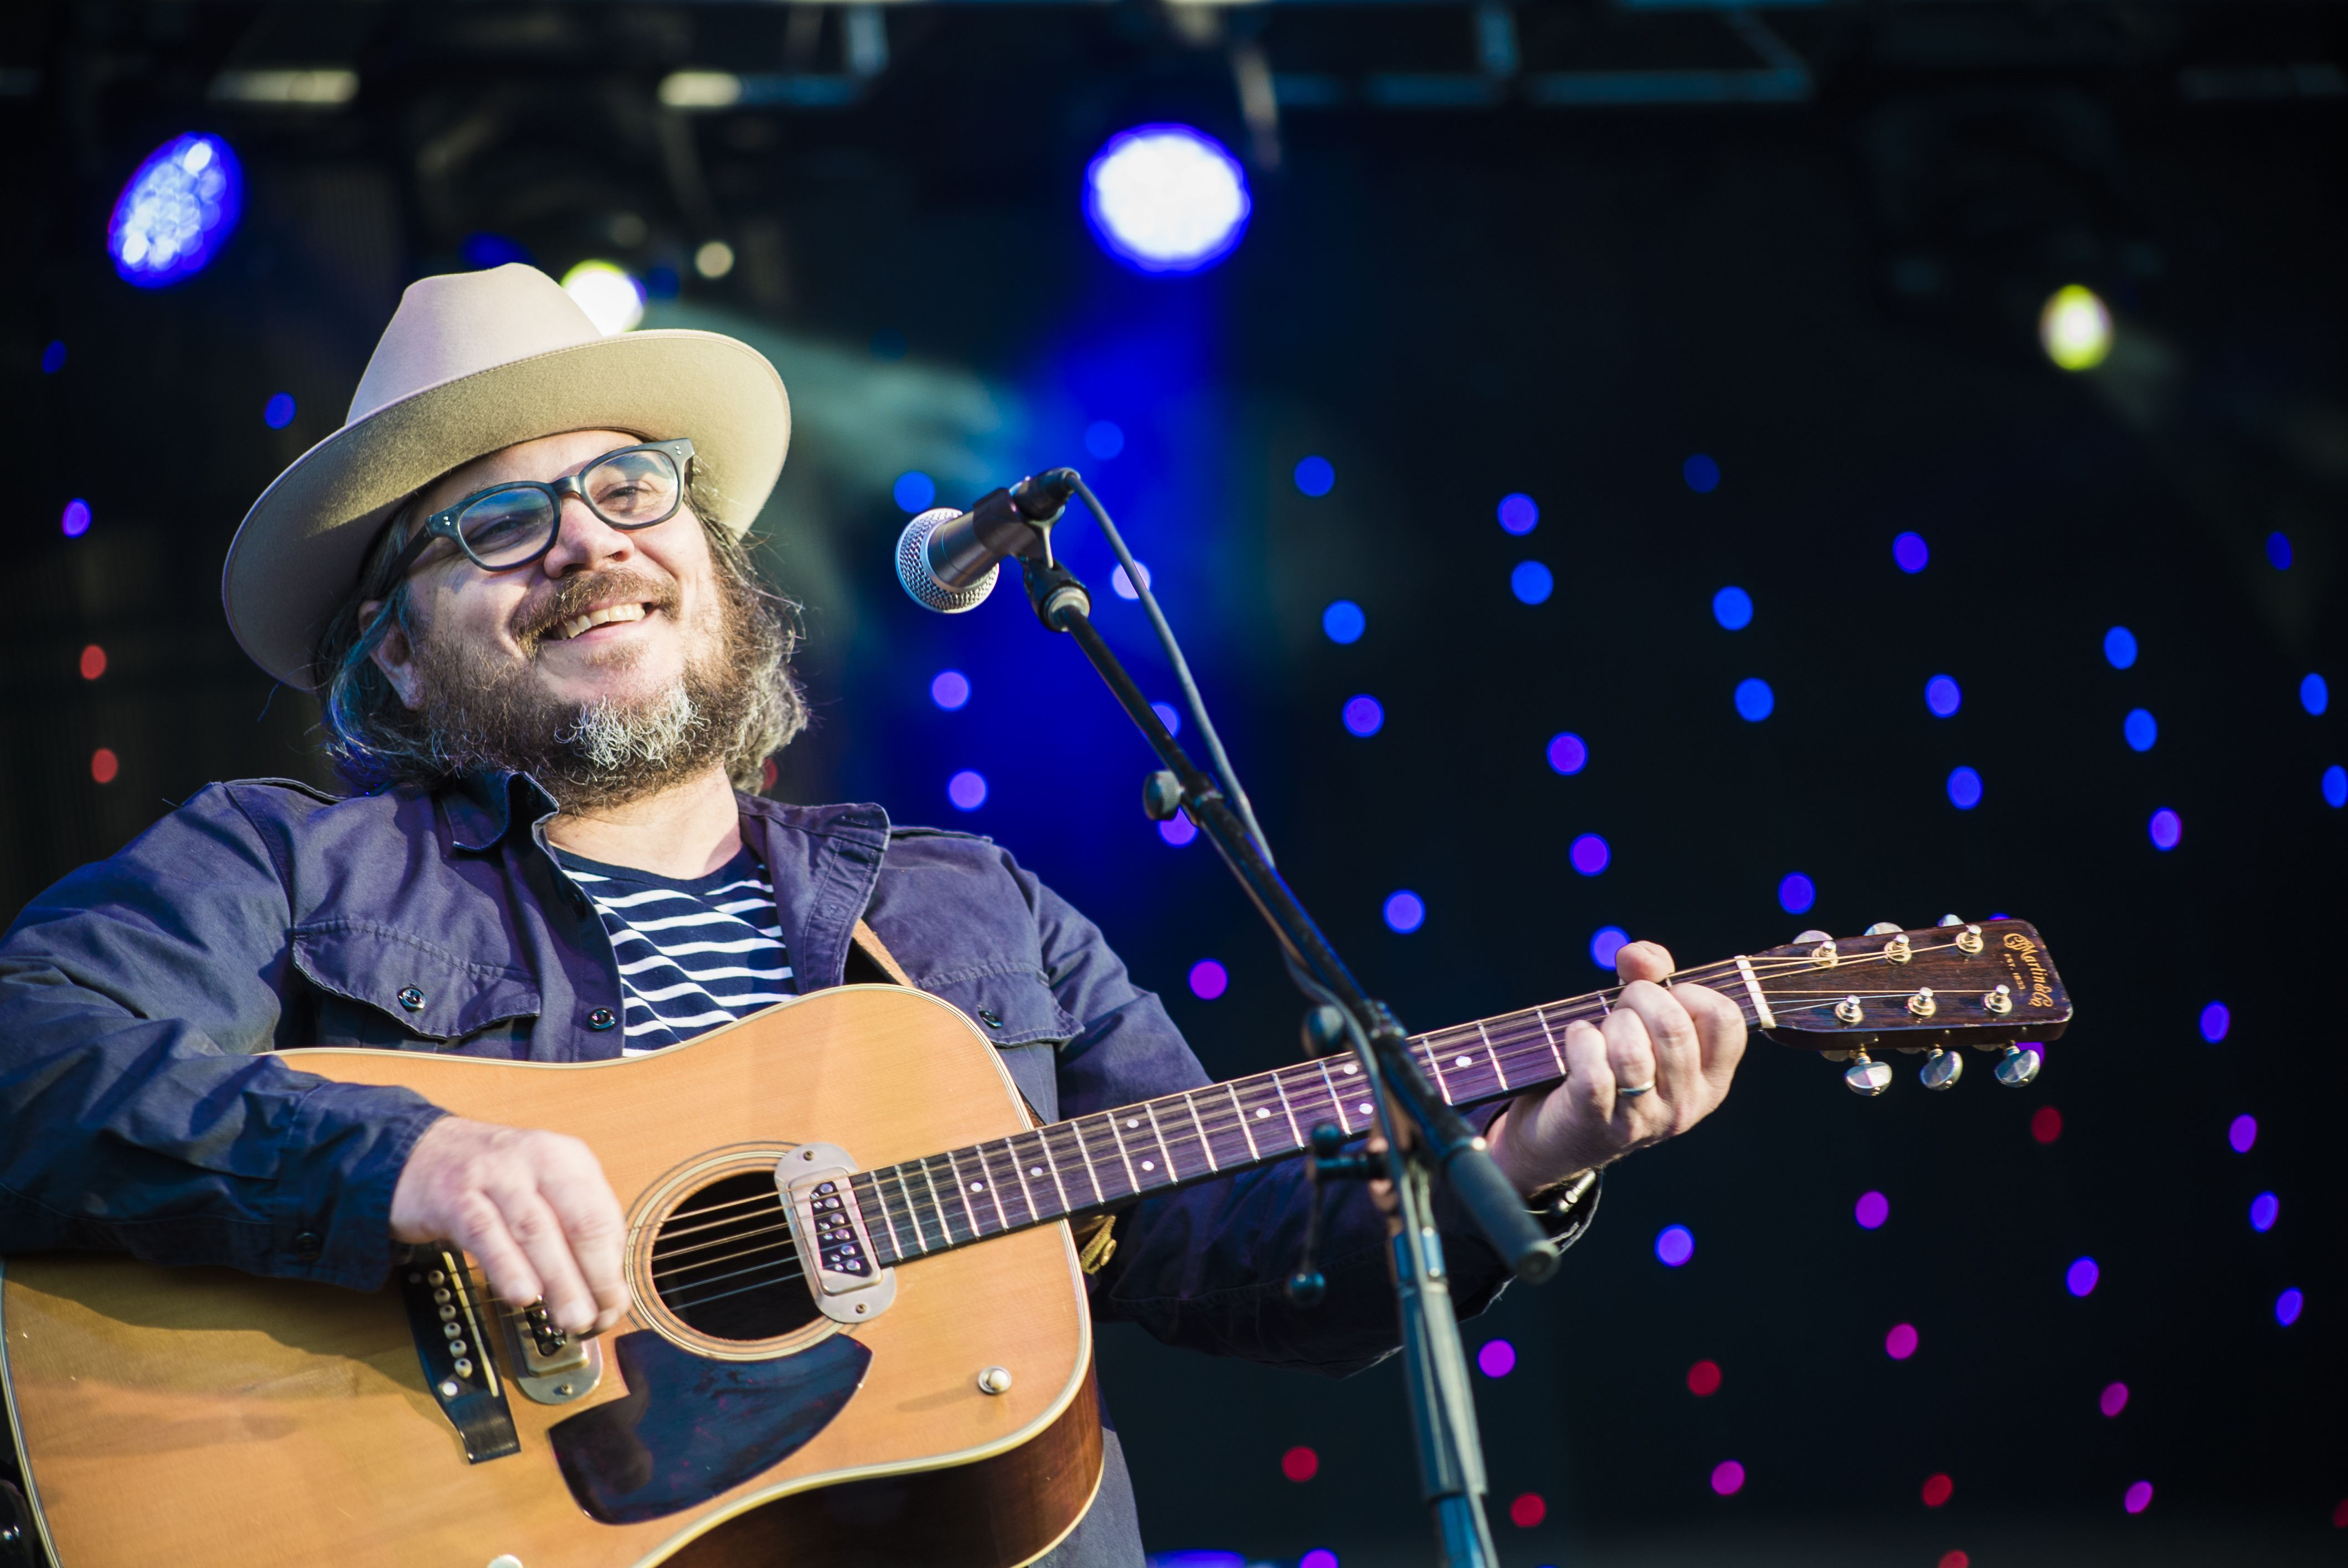 Chicago home of Wilco's Jeff Tweedy struck by multiple gunshots